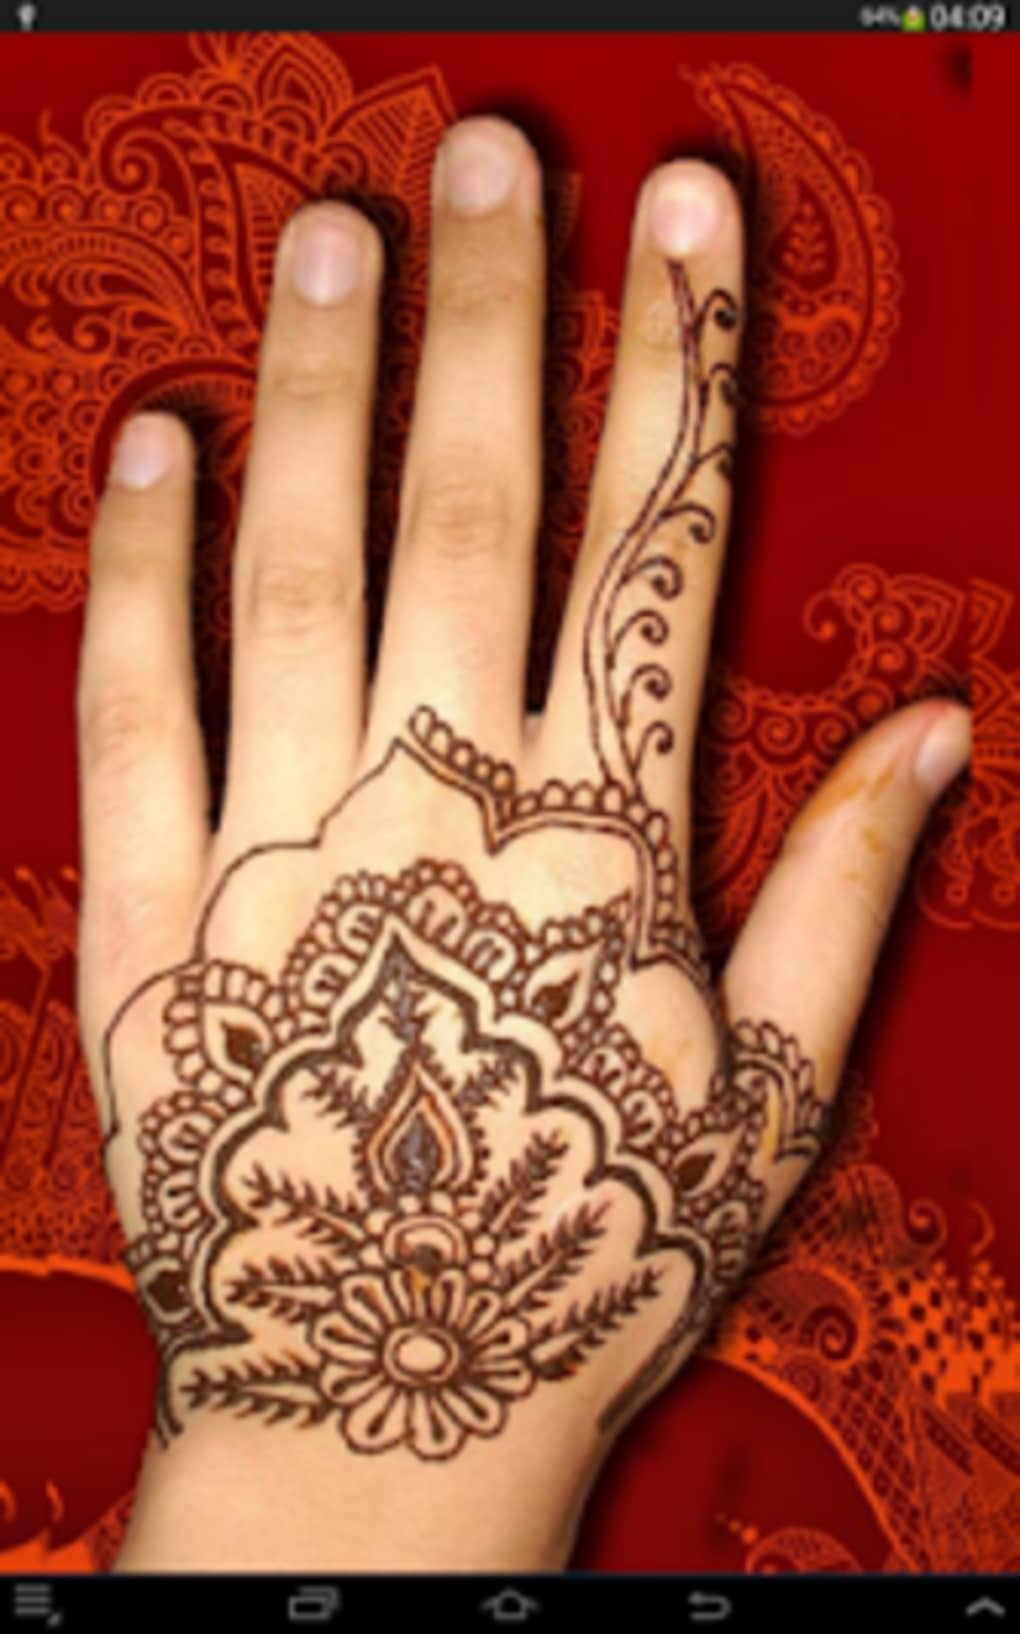 Mehndi Design 2 for Android - Download